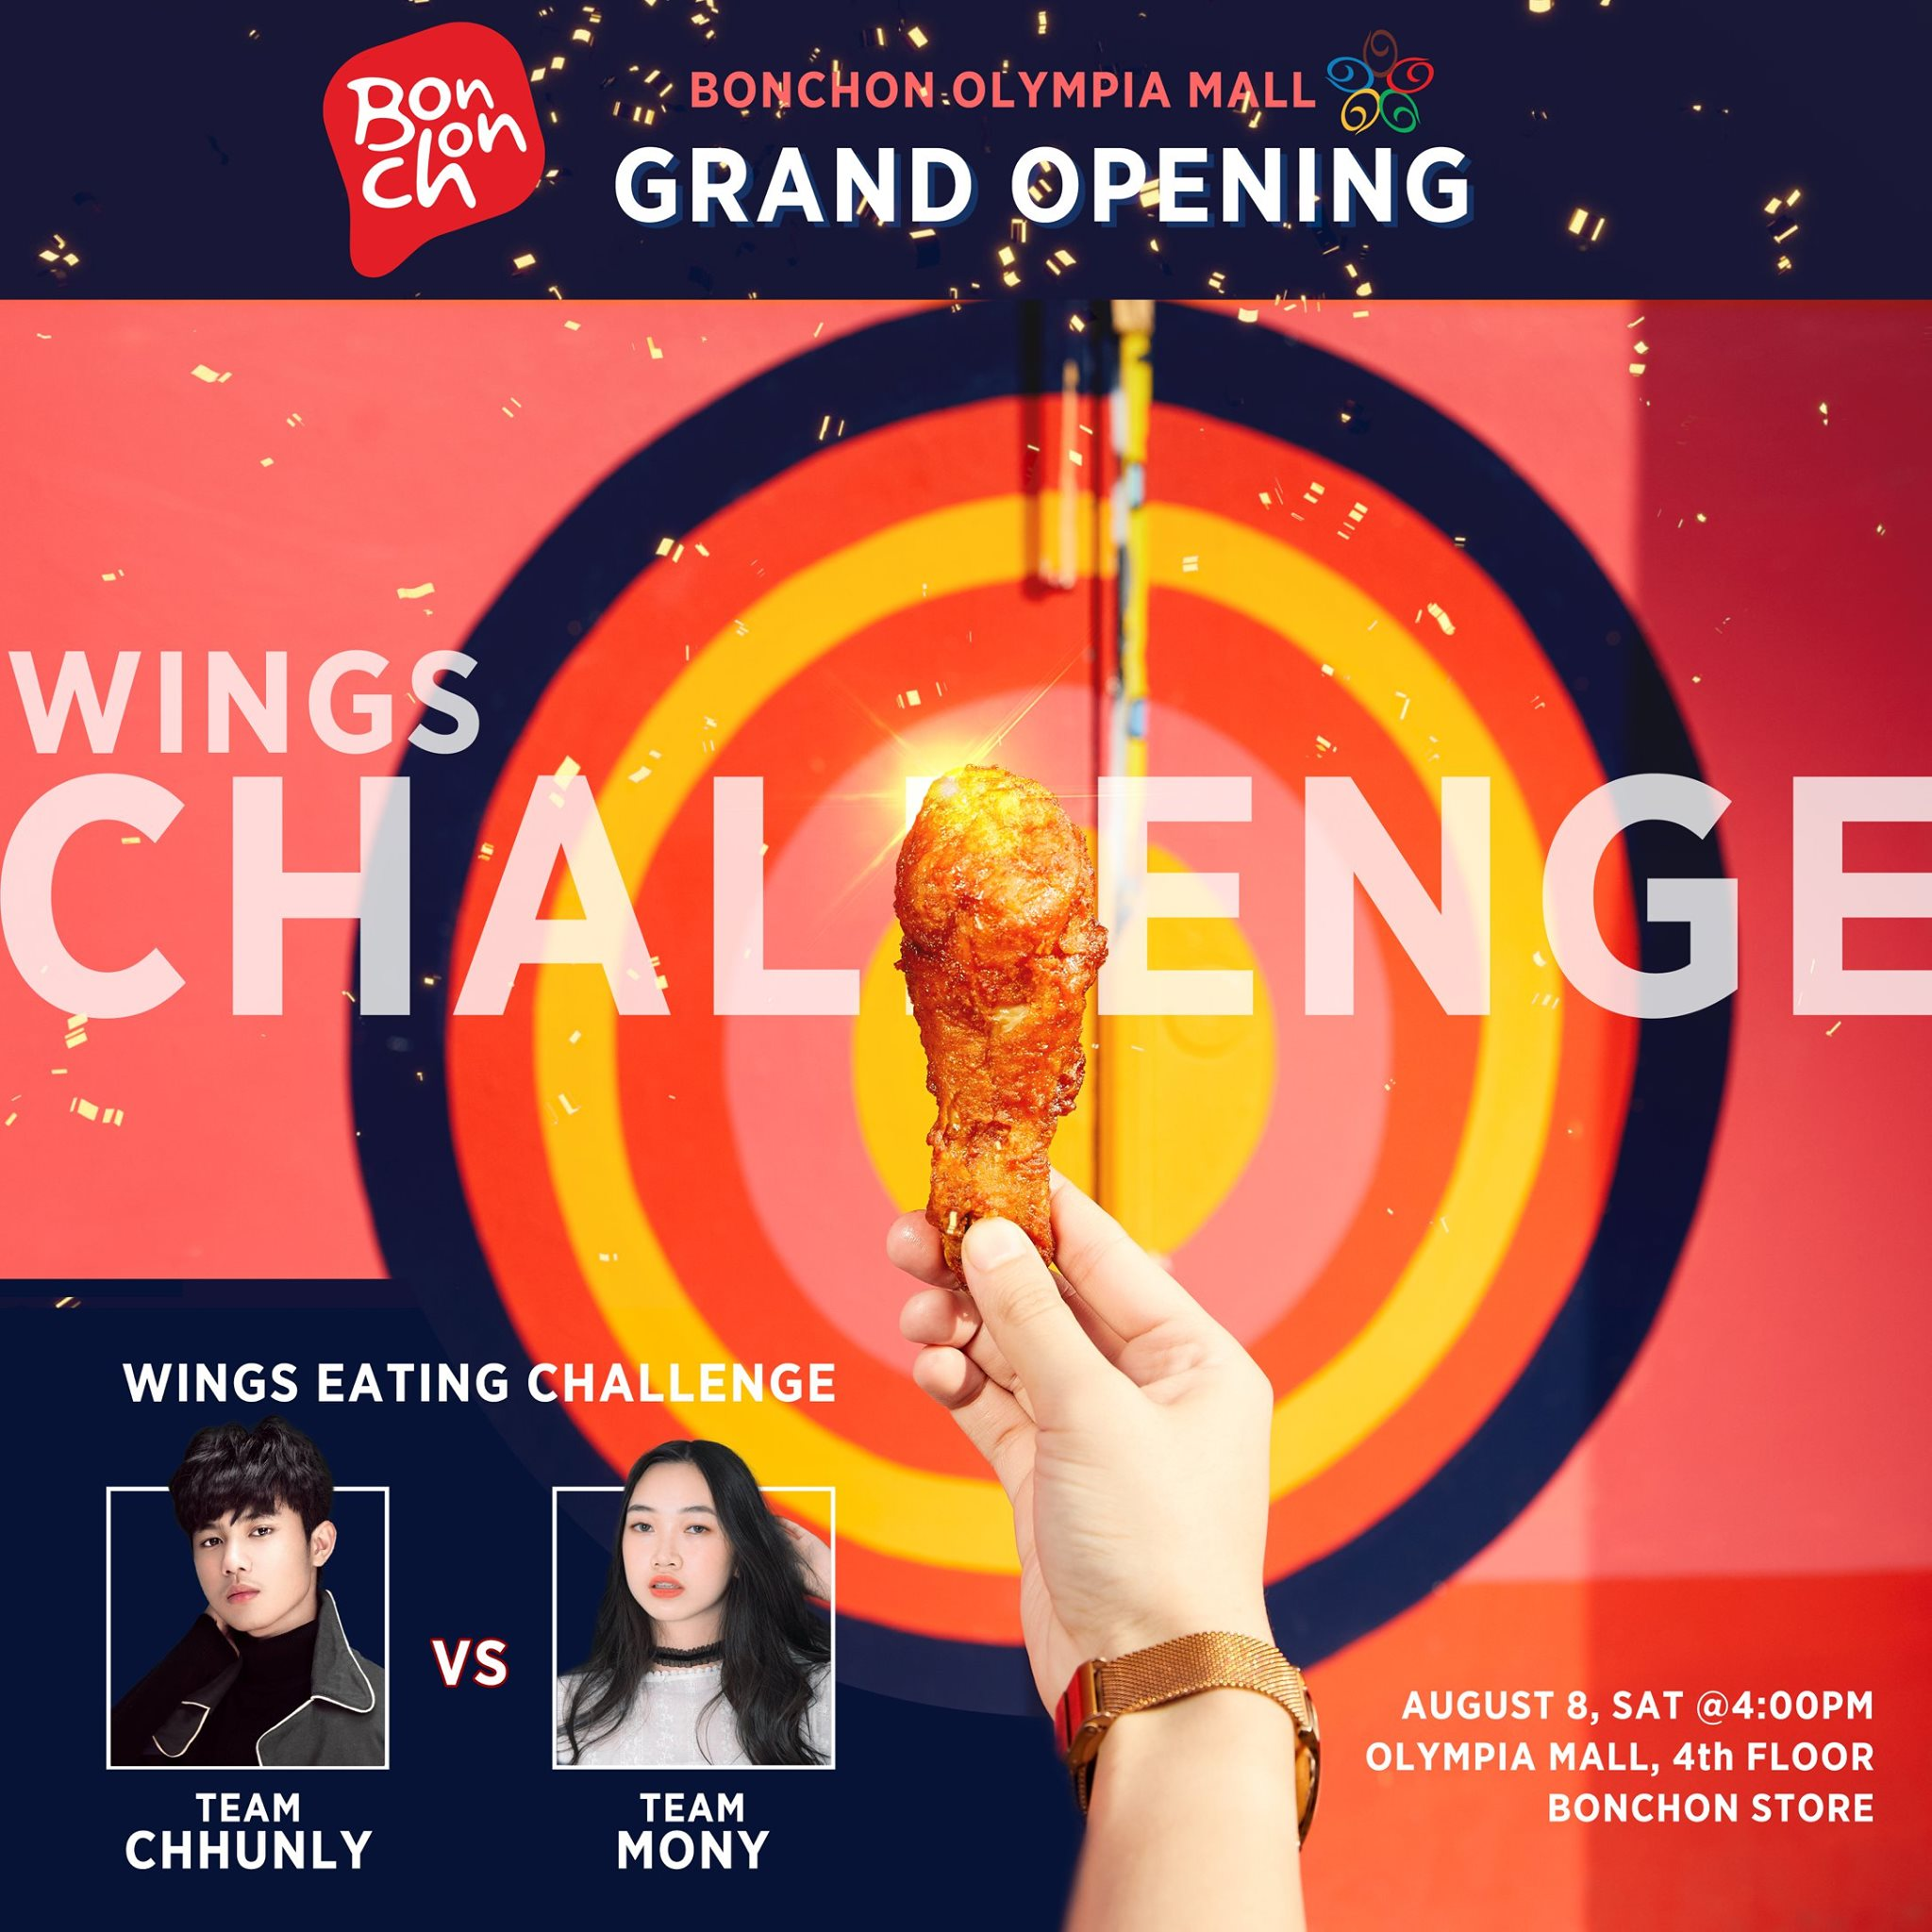 Bonchon Olympia Mall Grand Opening Wings Challenge